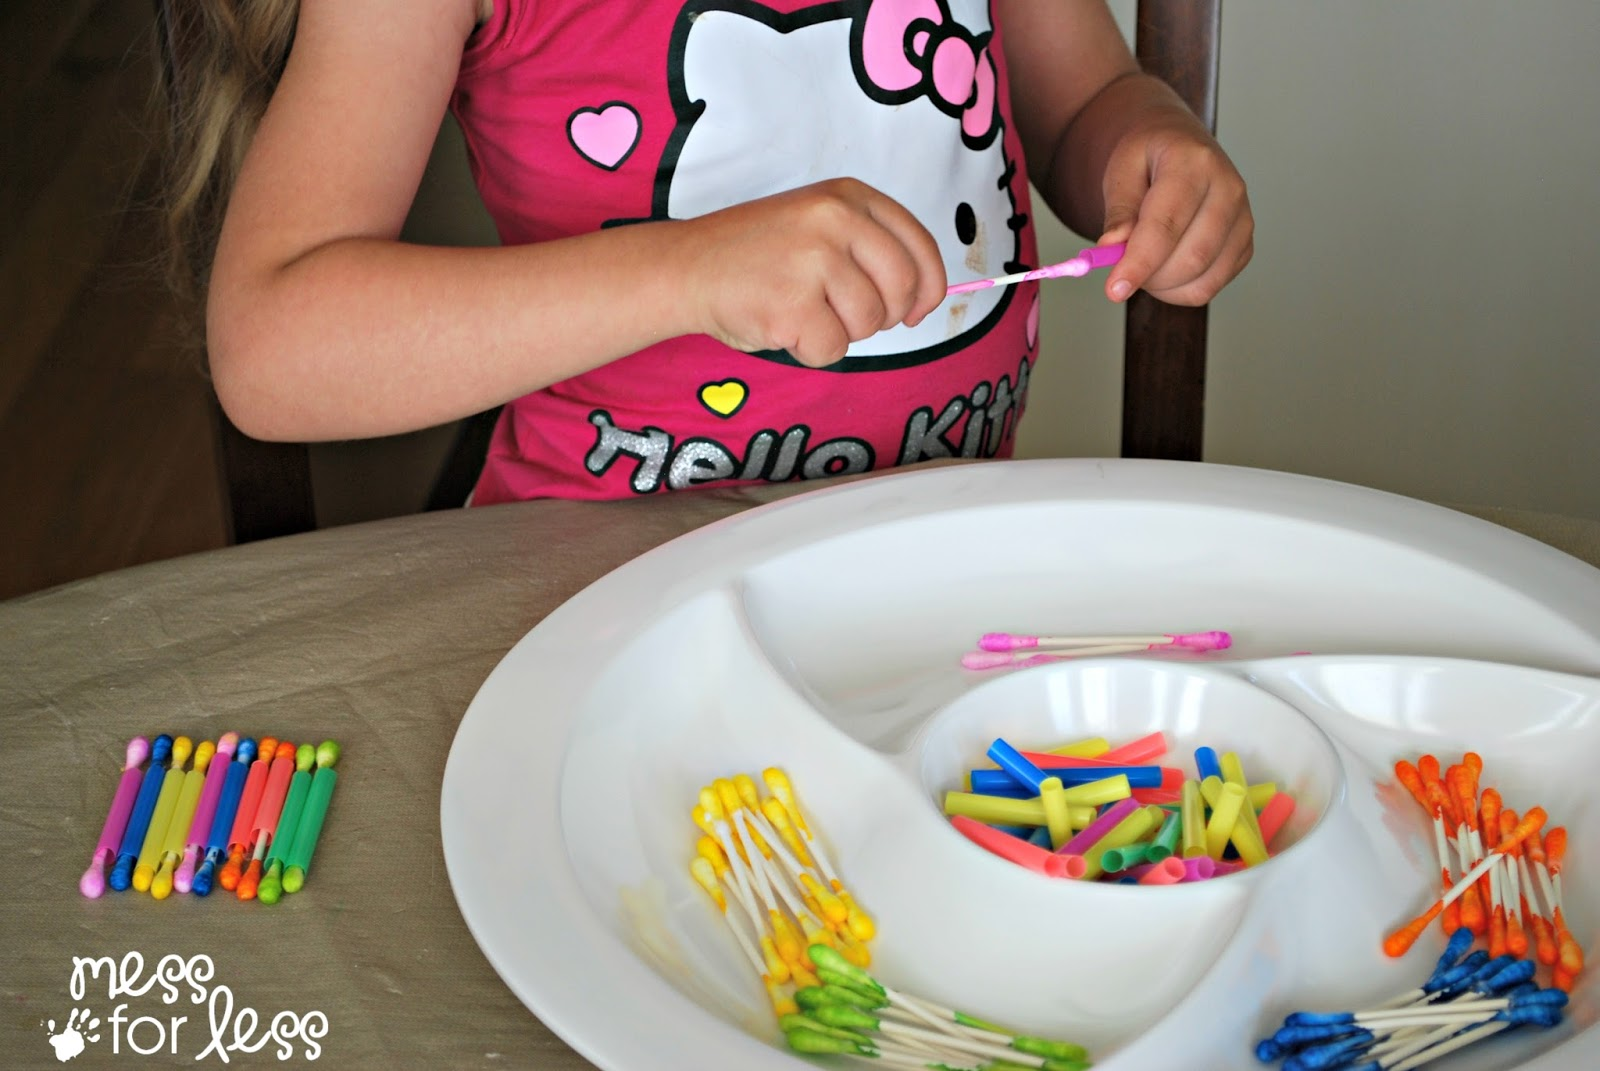 In addition to working to working on fine motor skills, this activity ...